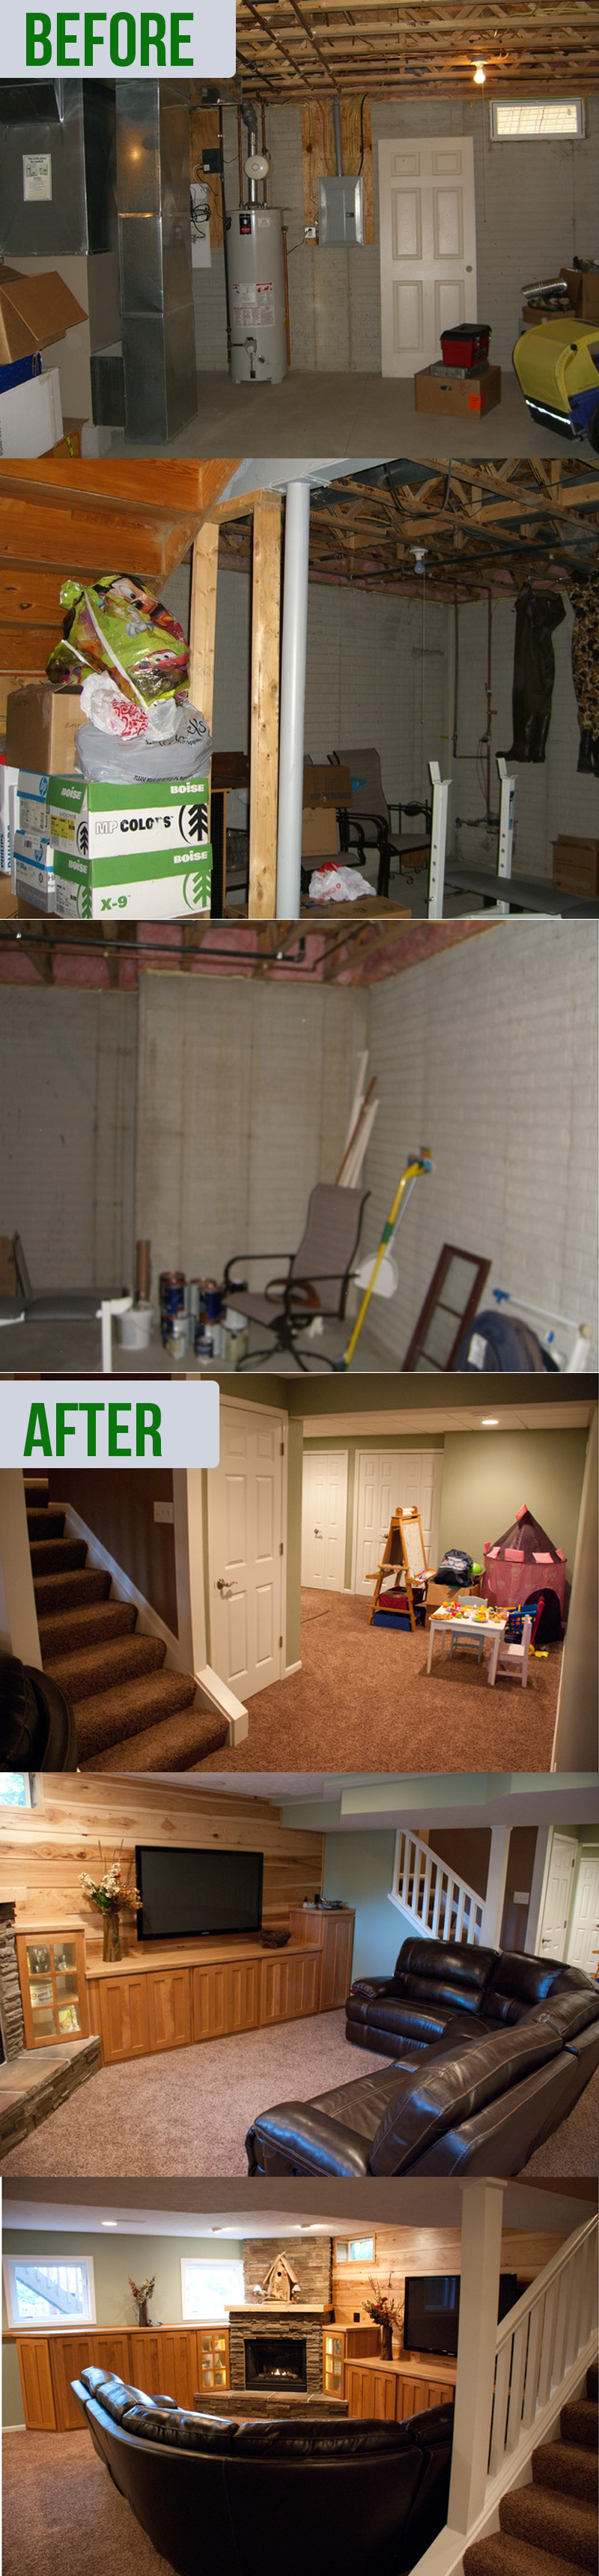 Basement Remodel Before And After Ideas 20 Best Ideas 2020 The Plumed Nest